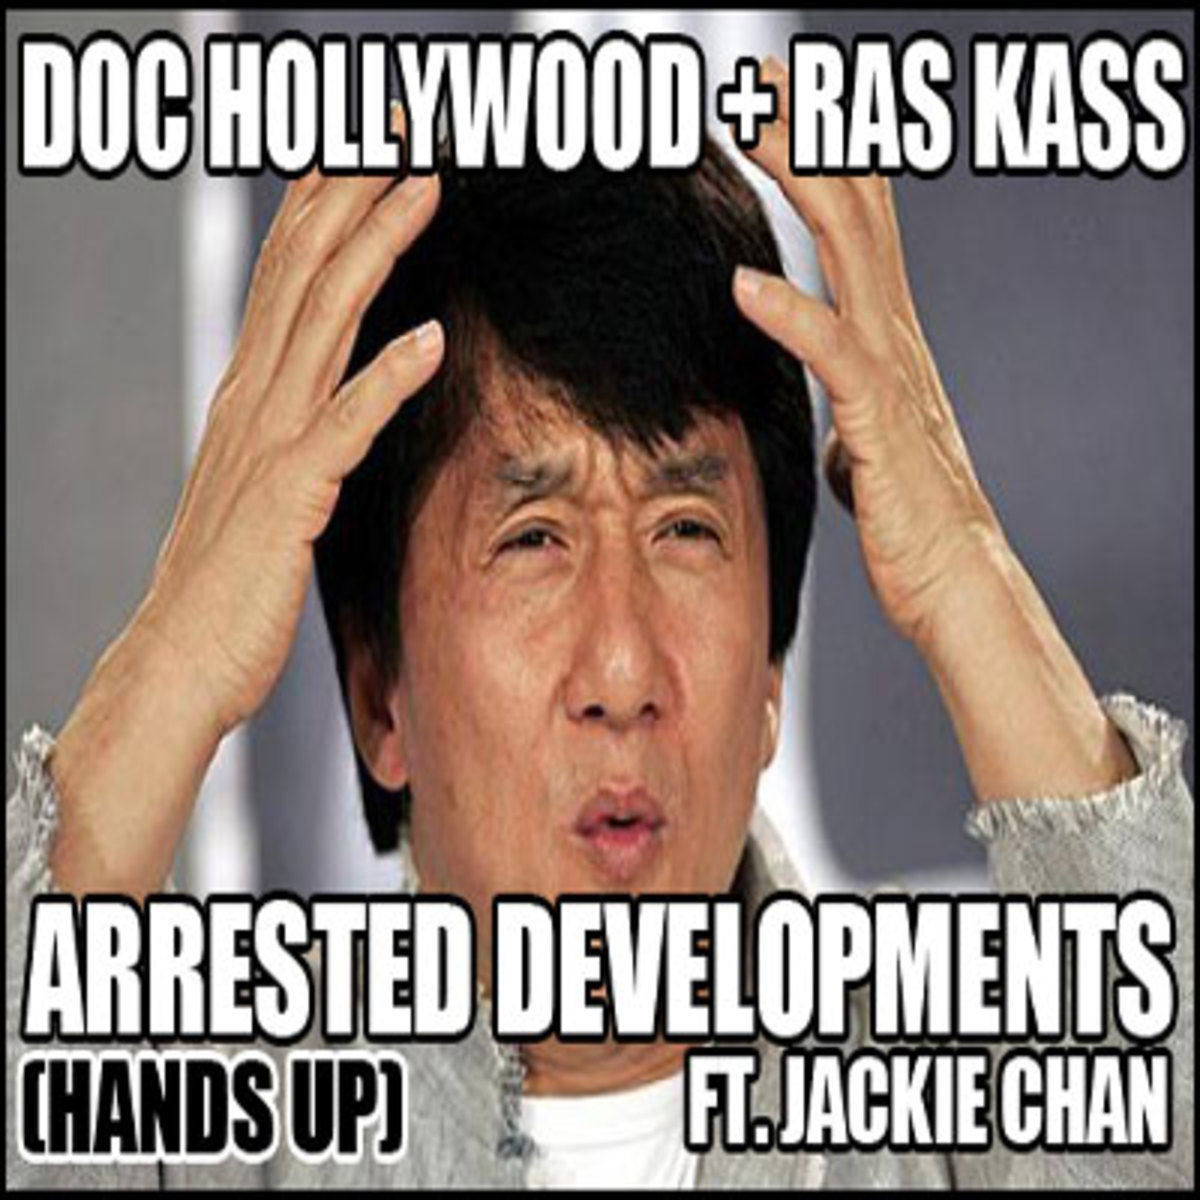 raskass-arresteddevelop.jpg